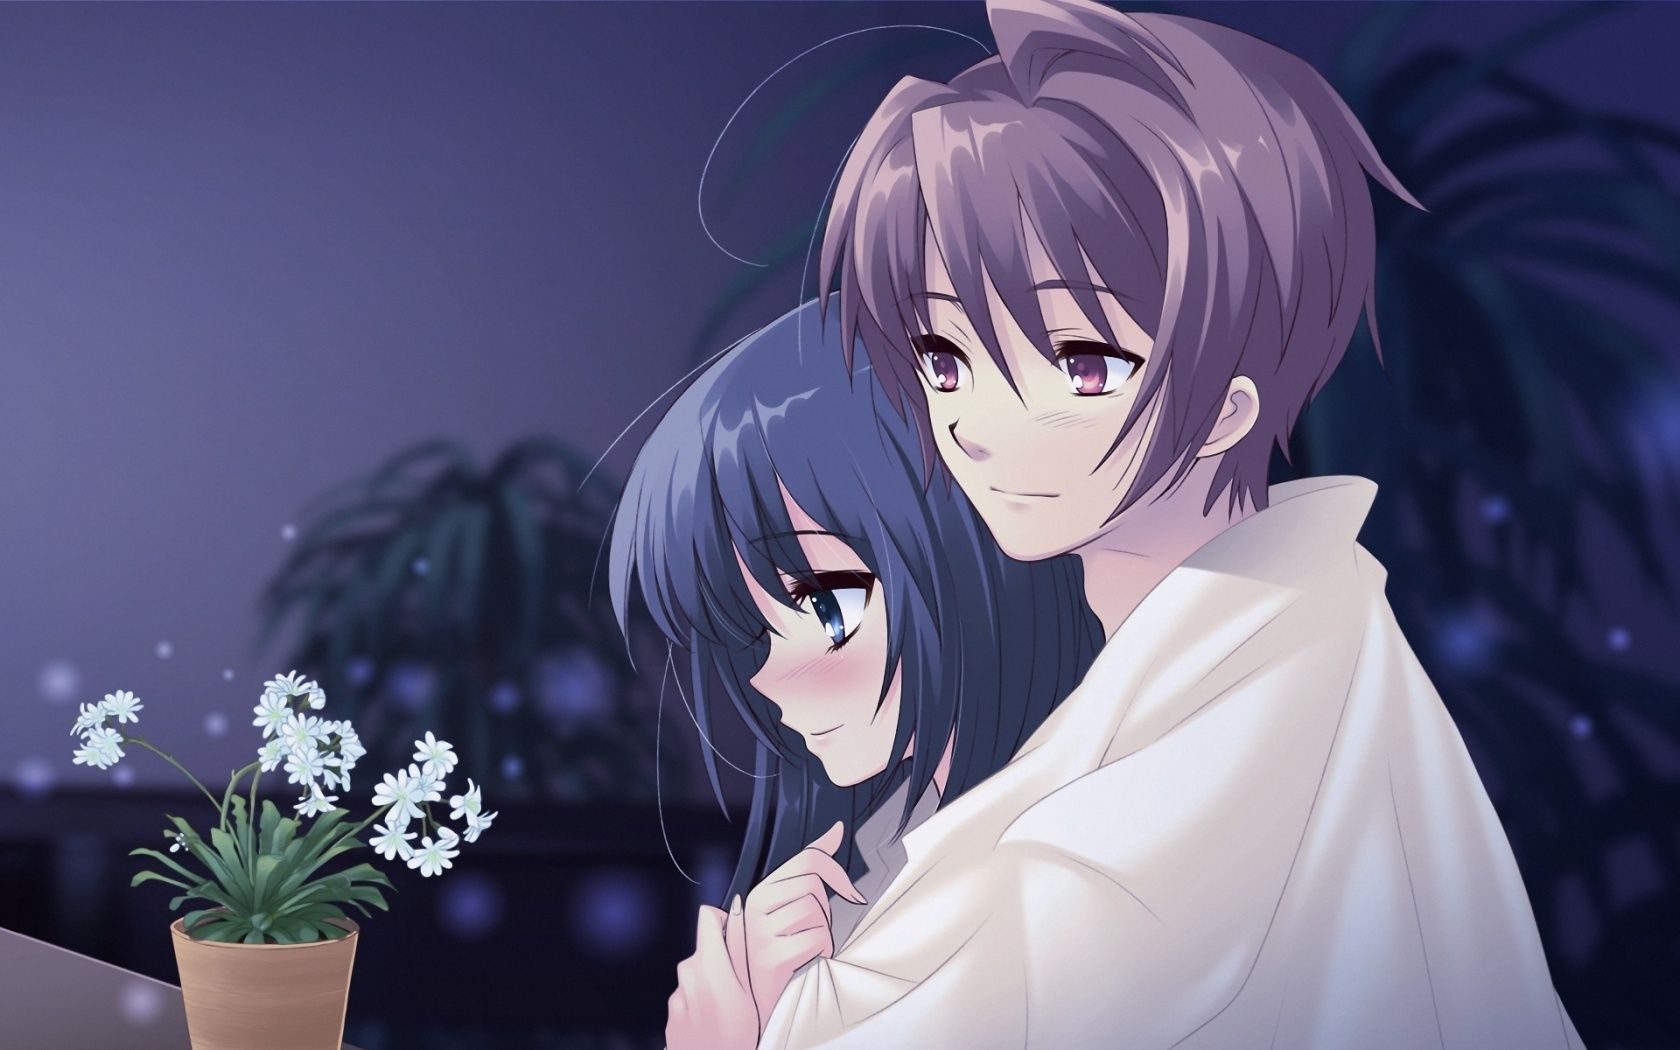 Anime Boy And Girl In Love Wallpaper : Anime Boy and Girl Love Anime Boy And Girl 1680x1050 Download close cool pins ...